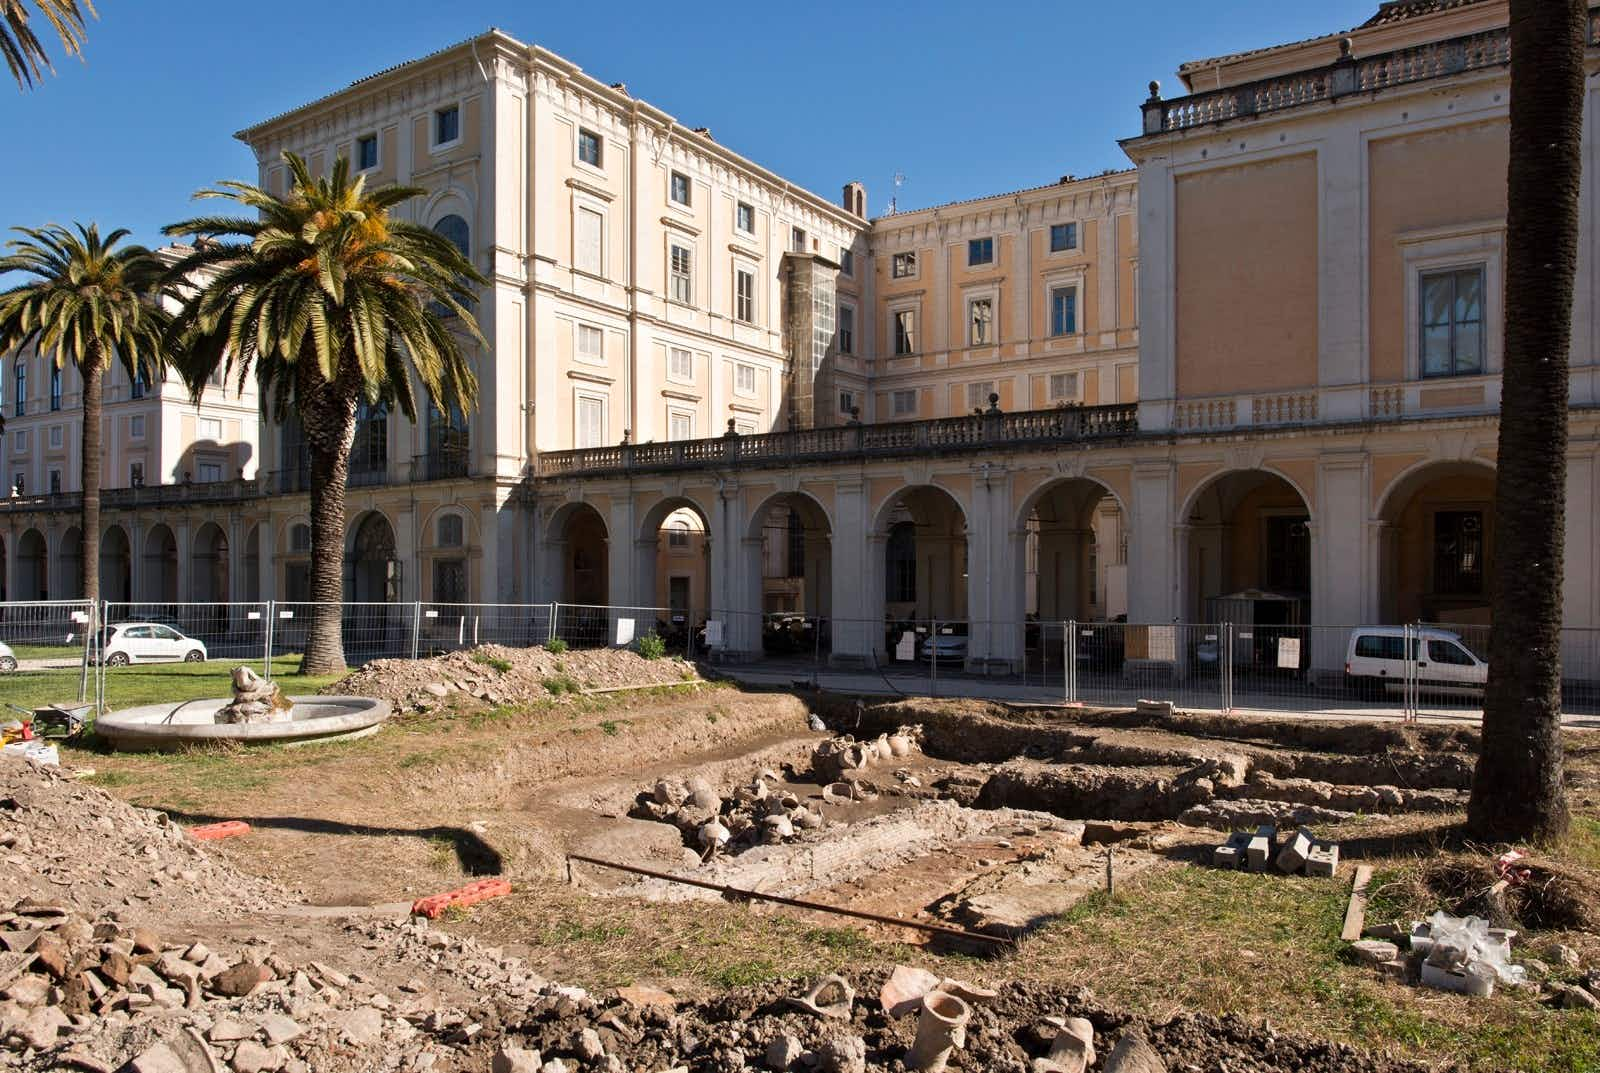 Maintenance staff find remains of ancient workshop in grounds of Roman palace